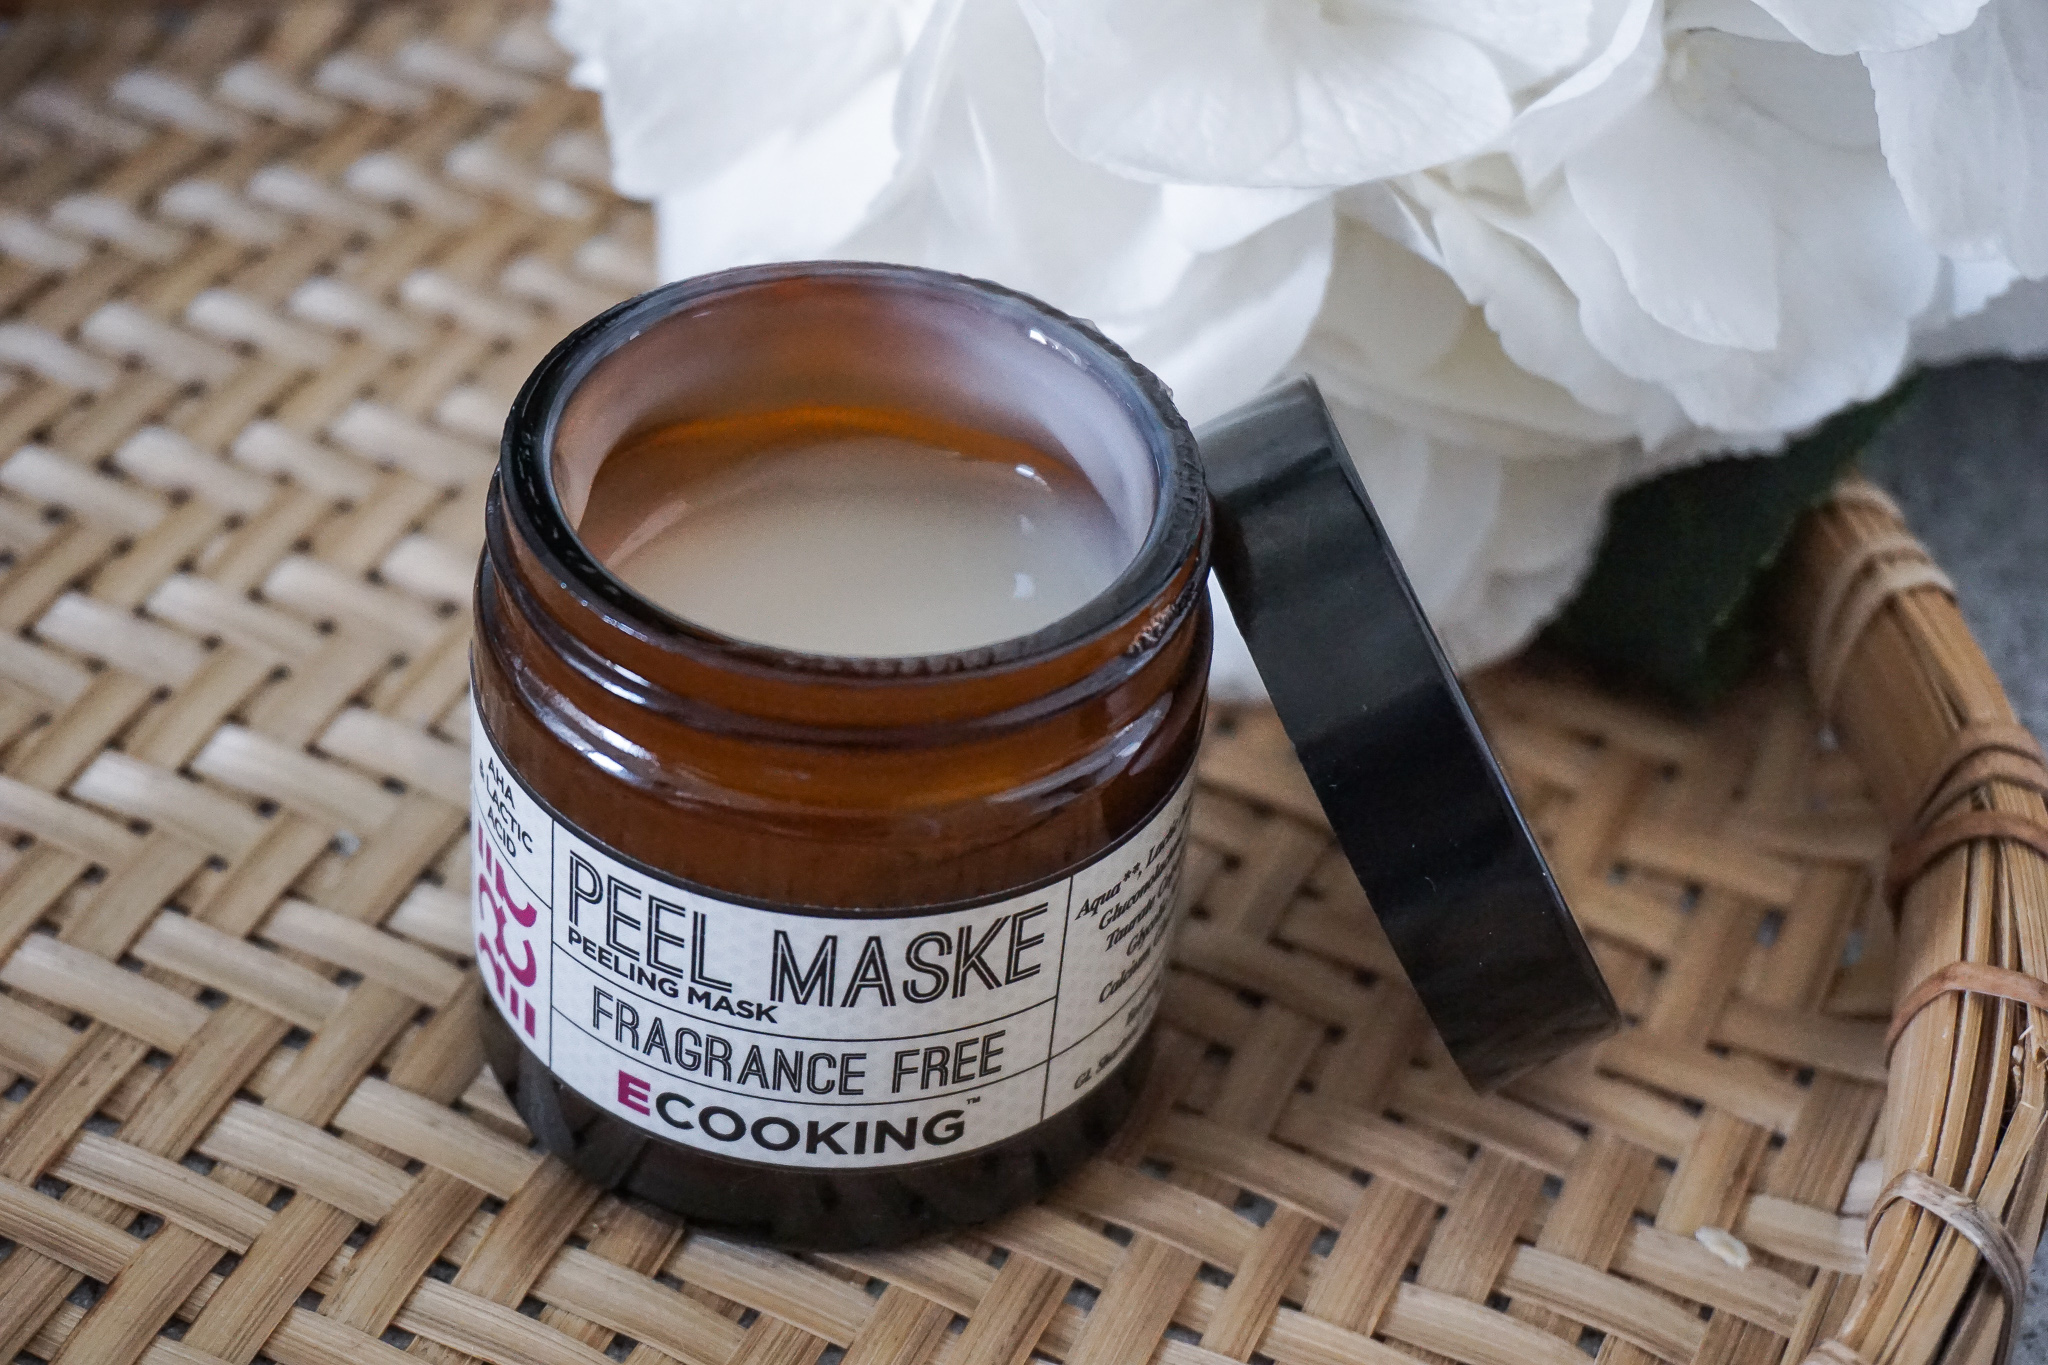 Cooking peel mask